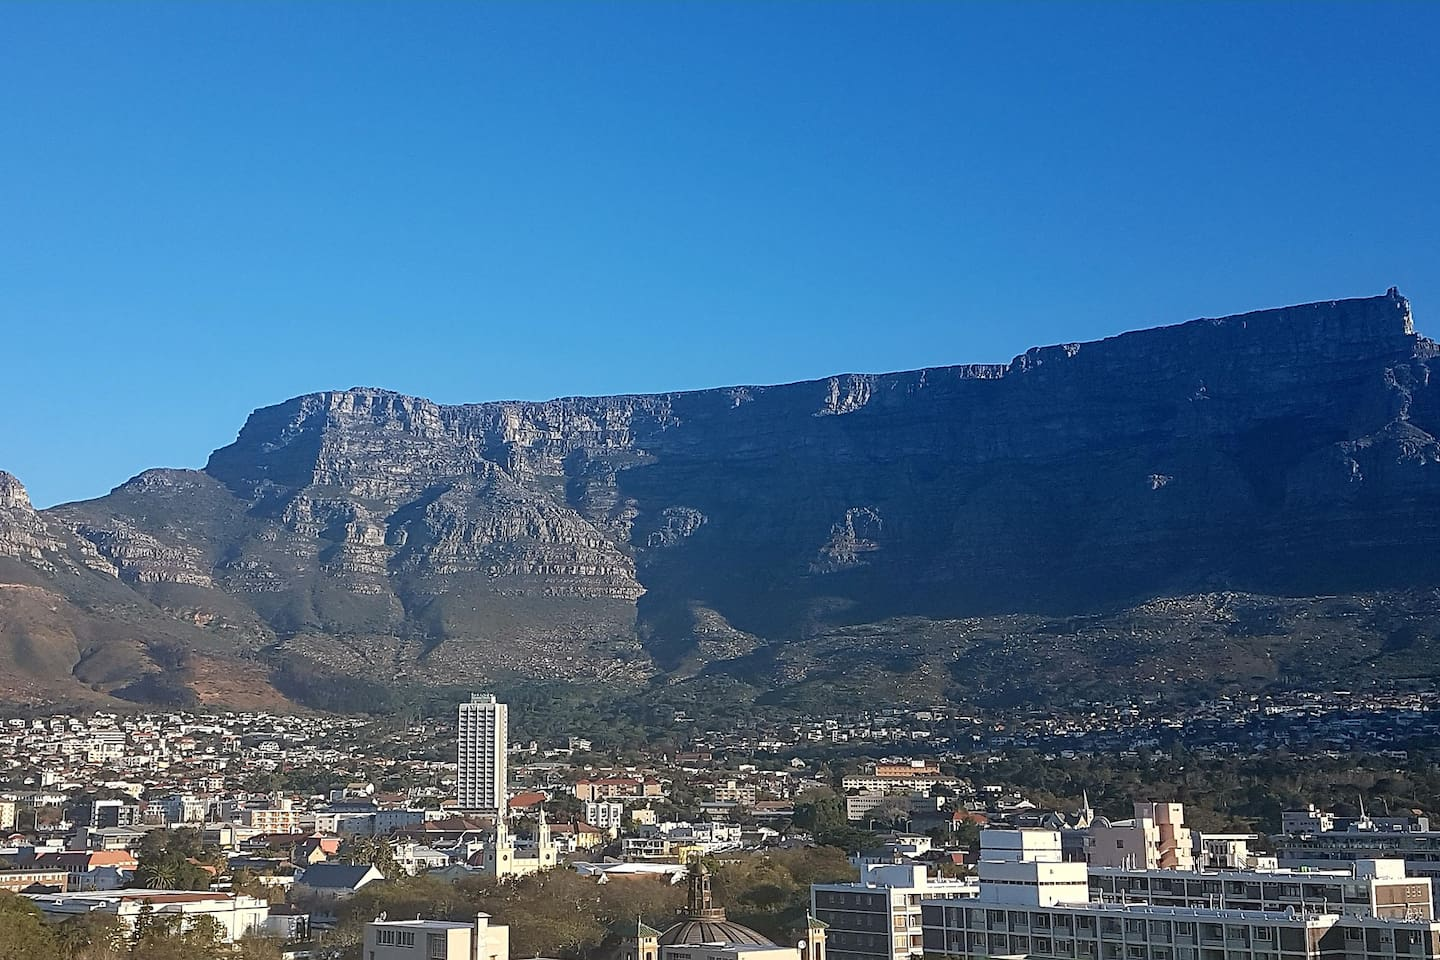 A view of Table Mountain from the balcony